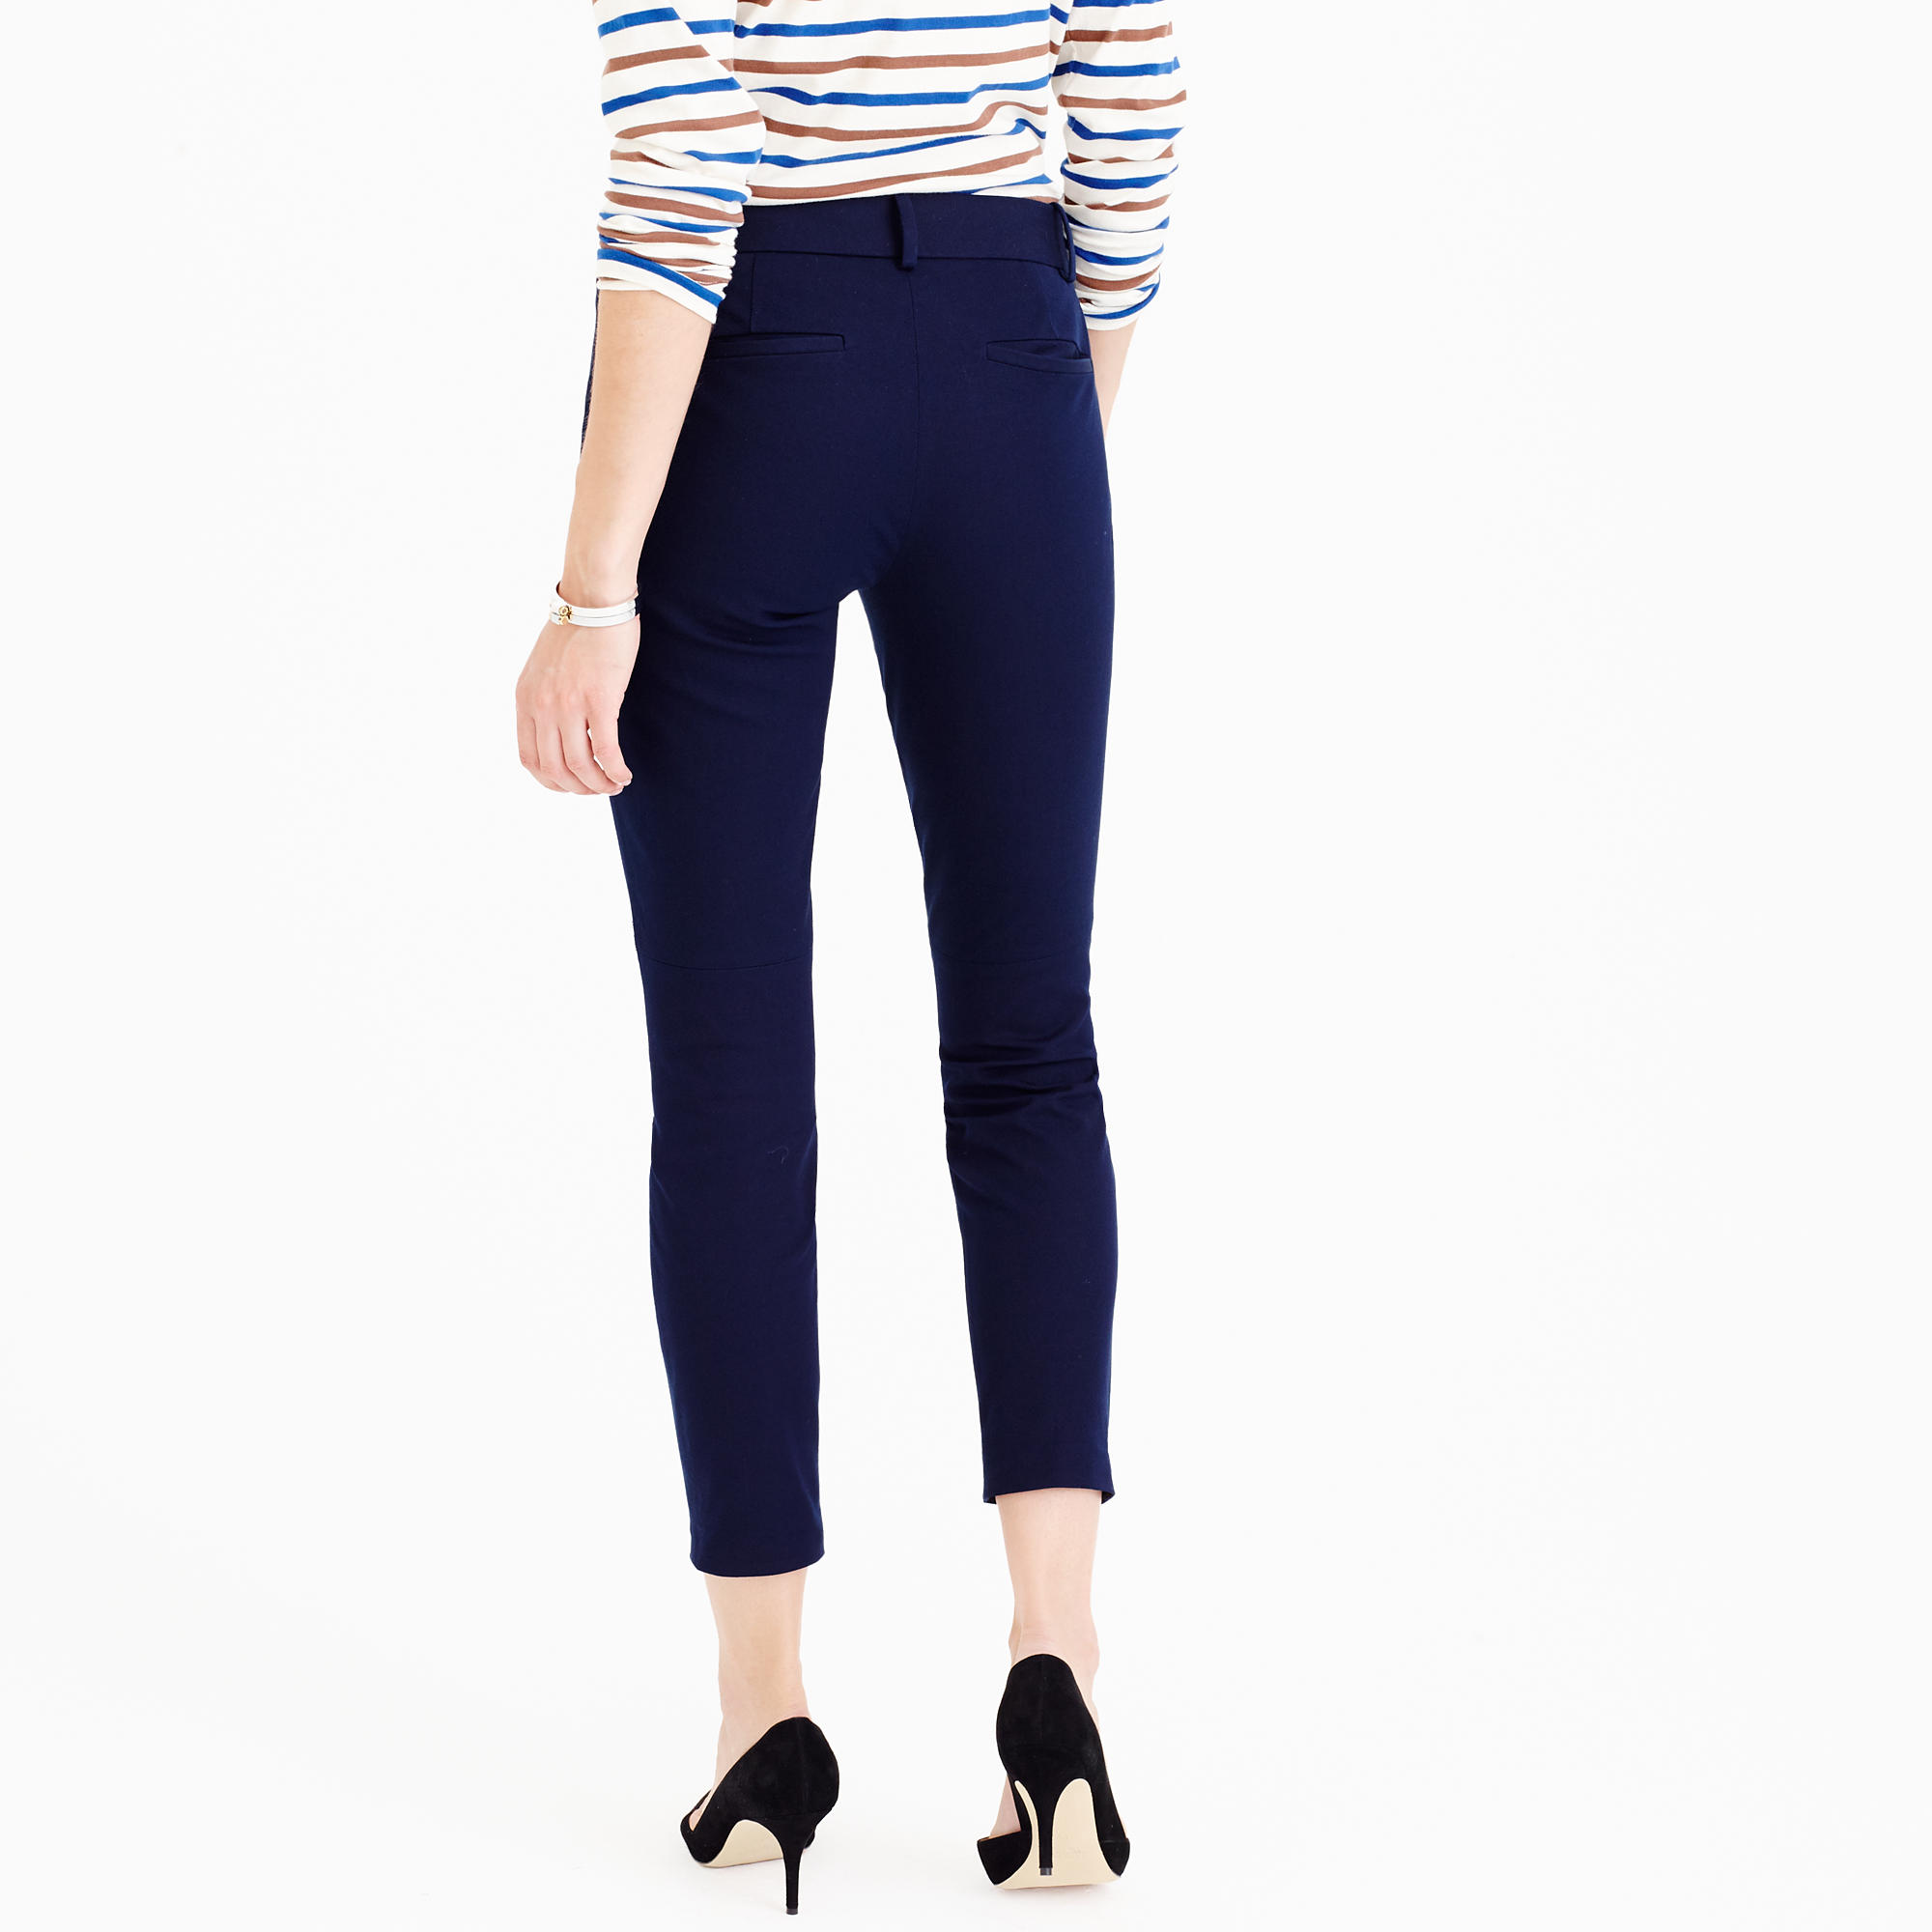 Minnie pant in stretch twill : Women Pants | J.Crew